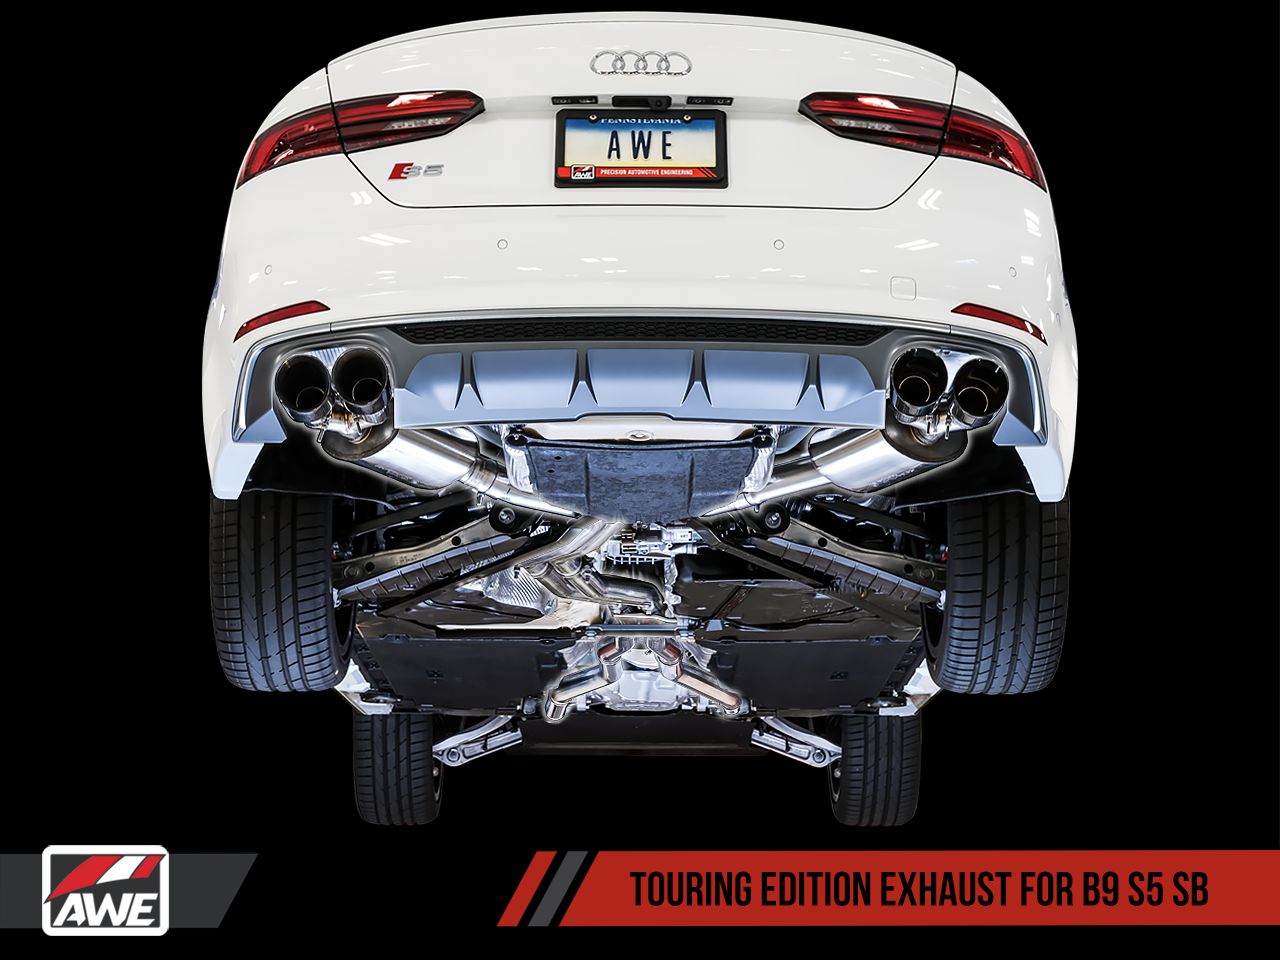 AWE Tuning Touring Edition Exhaust for Audi B9 S5 Sportback - Non-Resonated (Black 90mm Tips)